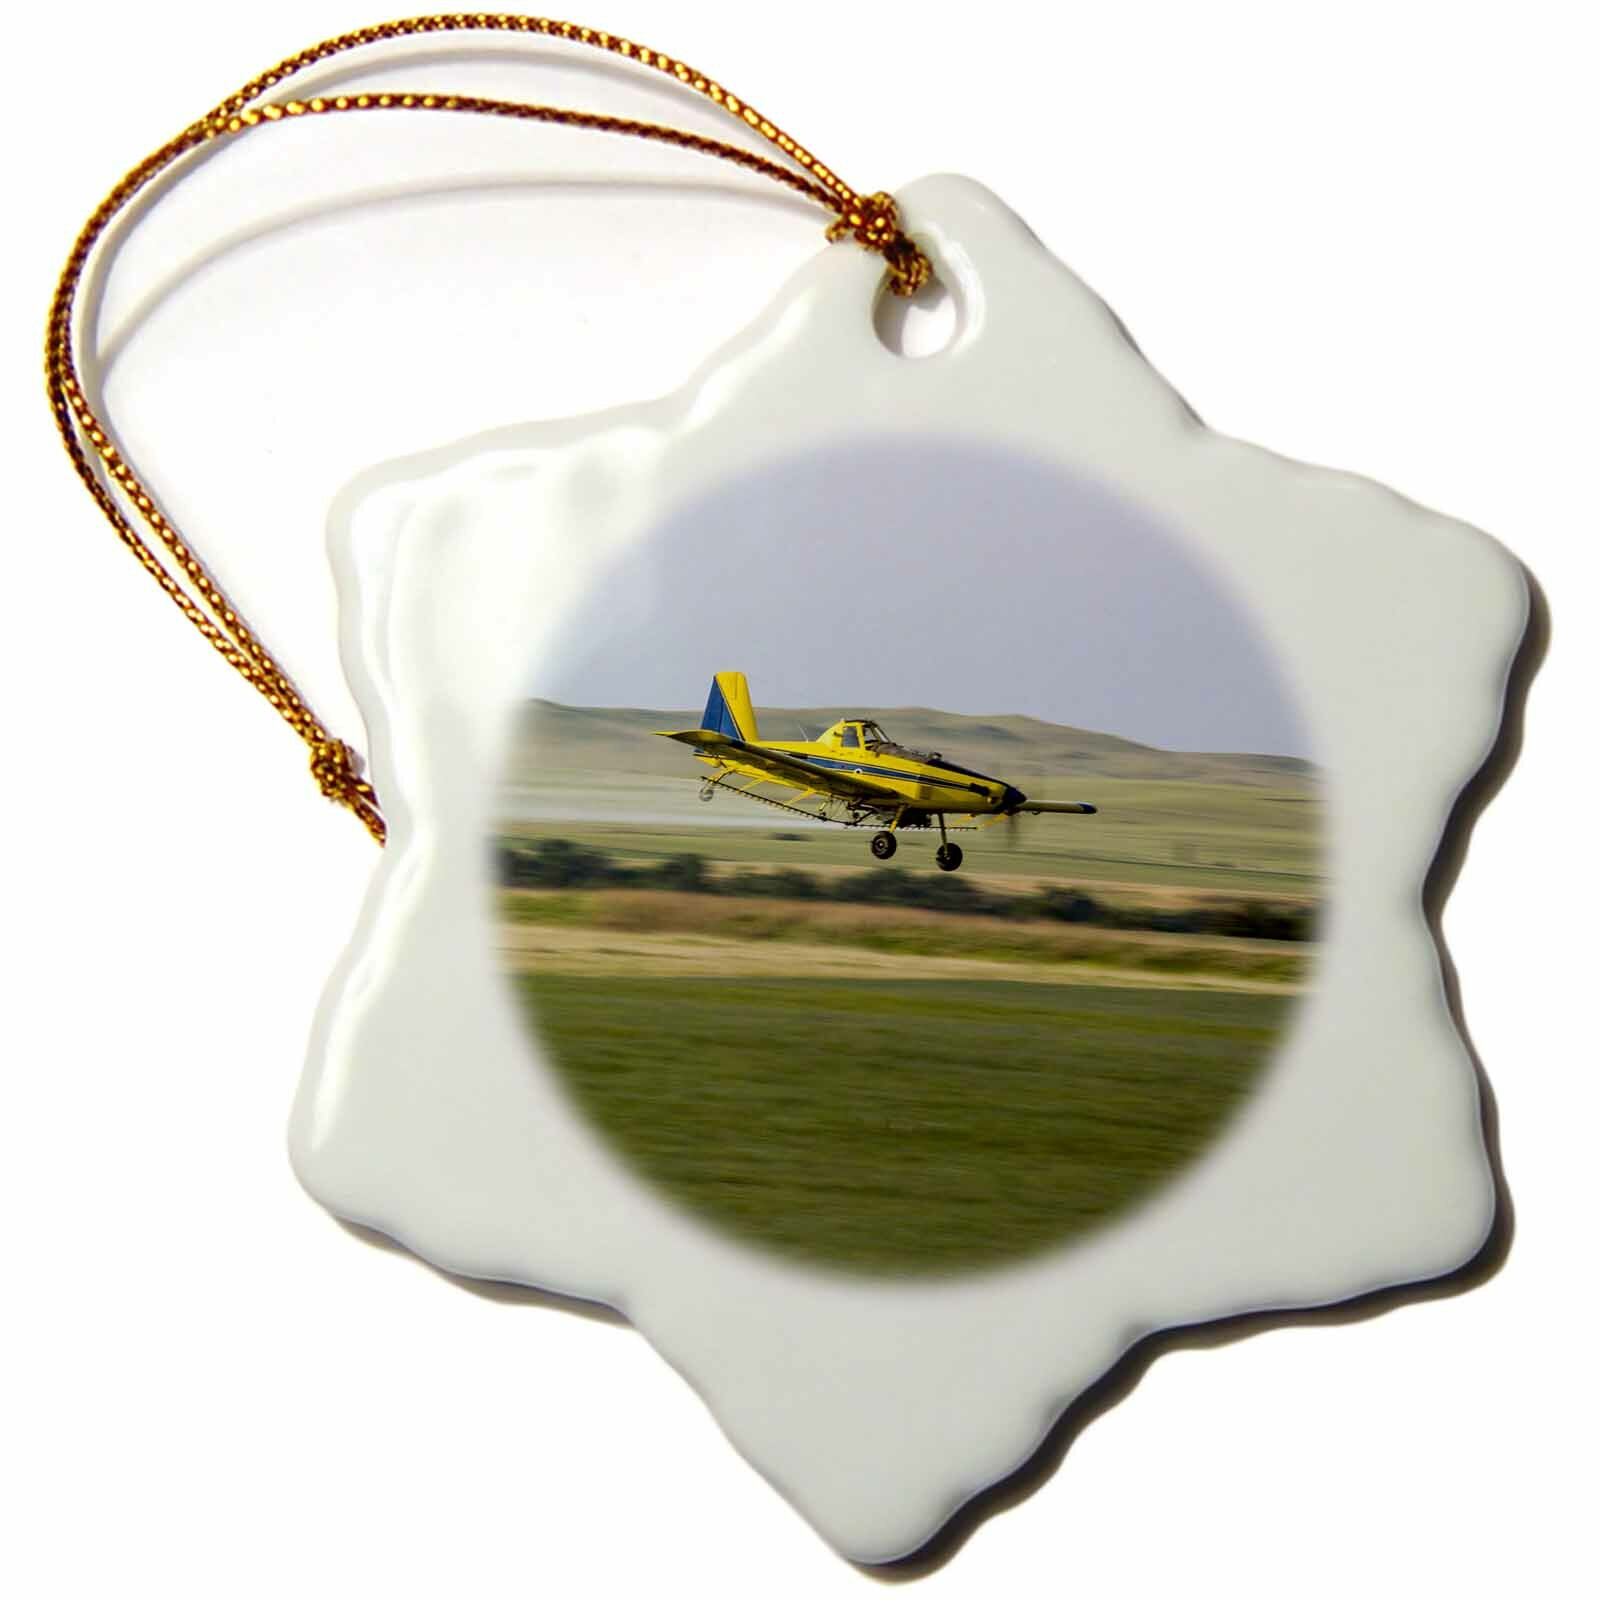 The Holiday Aisle Crop Duster Airplane Farm Field North Dakota Usa Snowflake Holiday Shaped Ornament Wayfair